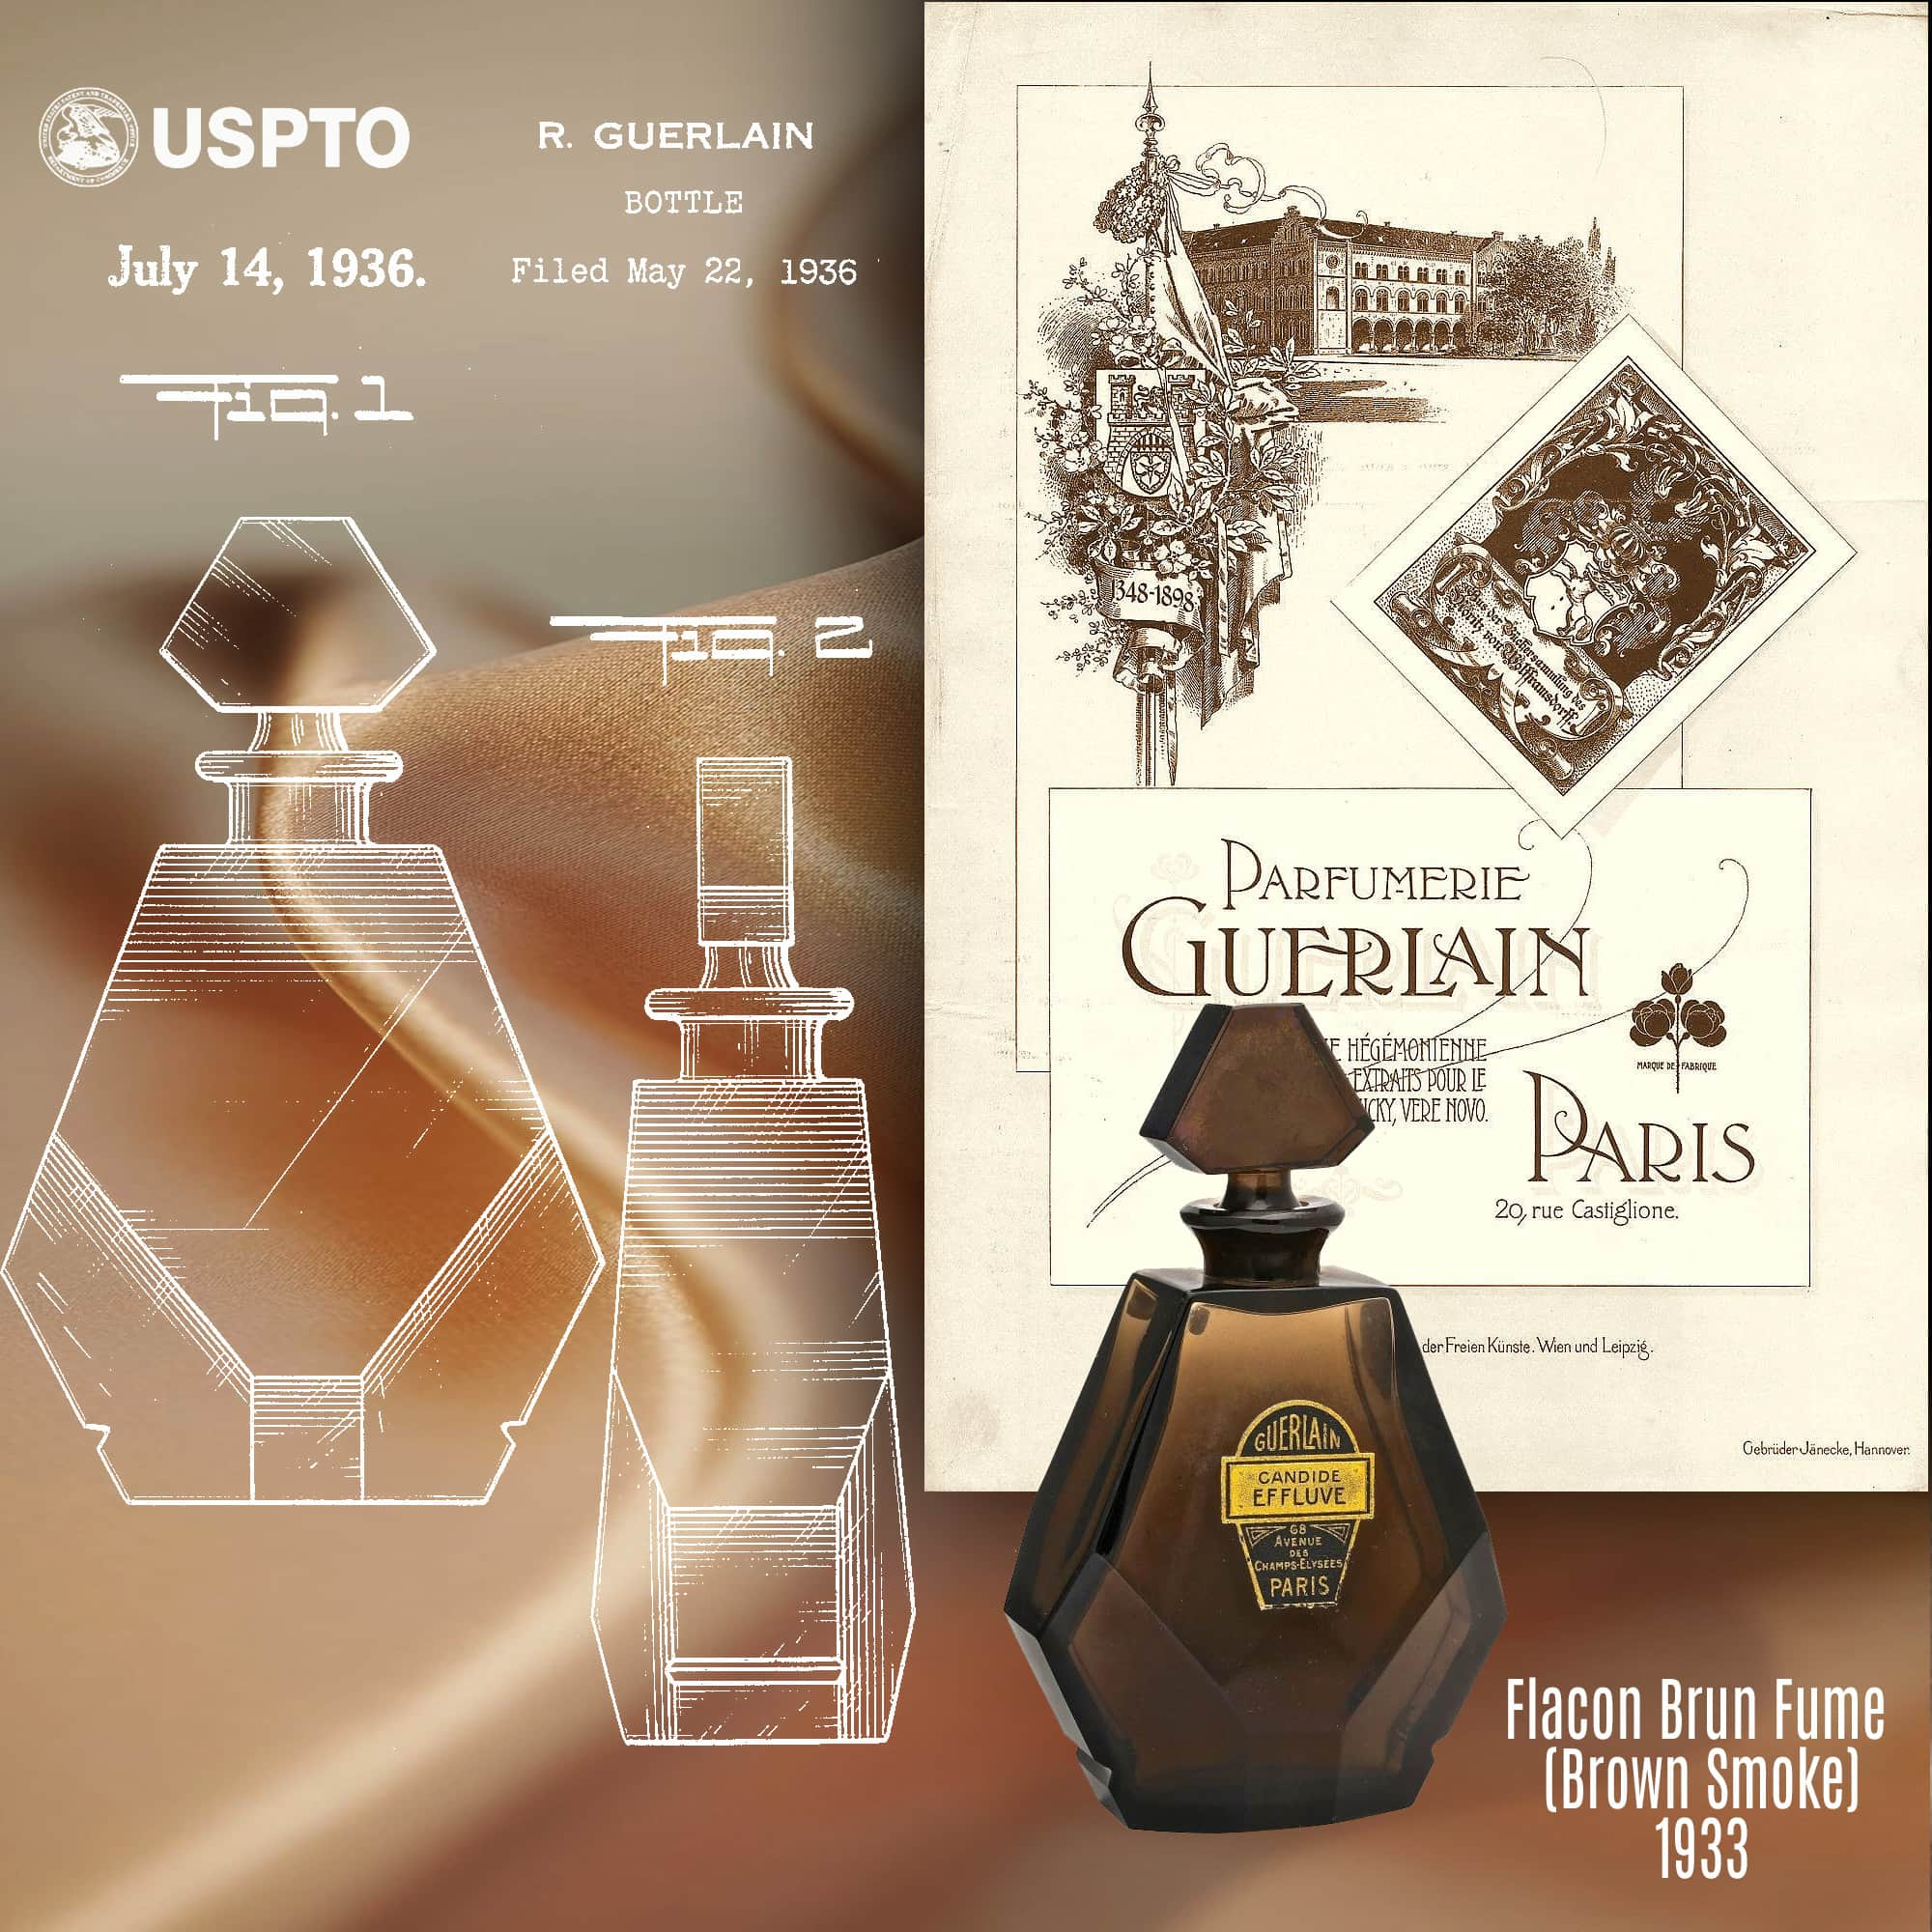 Guerlain patent for Flacon Brun Fume (Brown Smoke) 1933 - USPTO archives by RUNWAY MAGAZINE